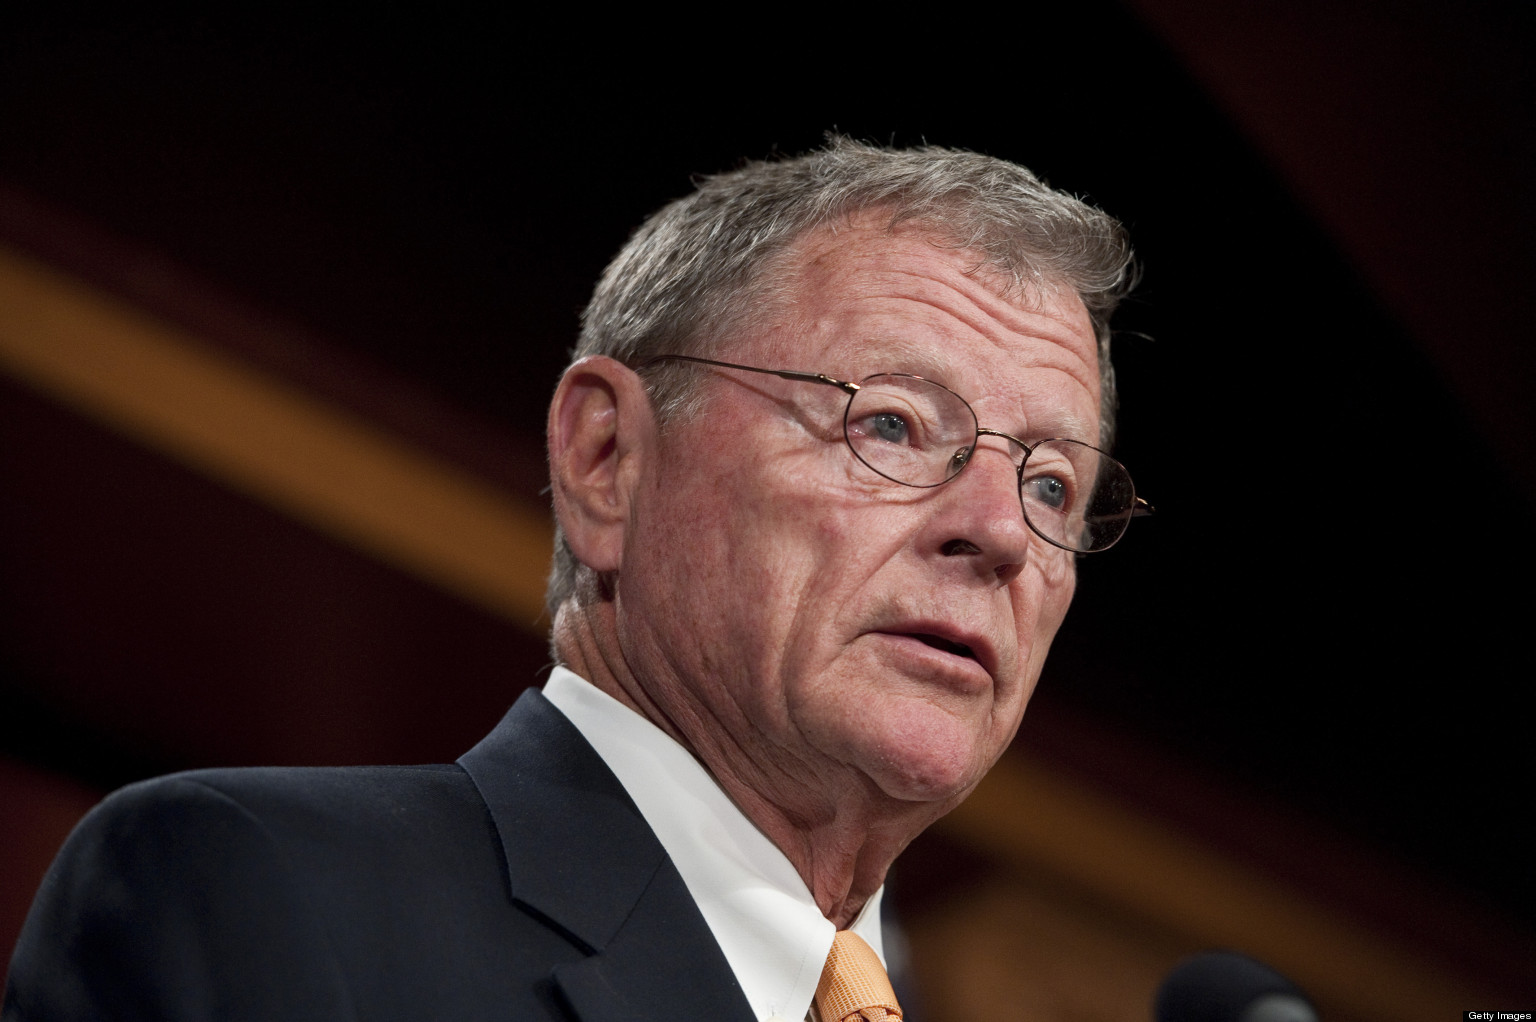 Inhofe: Oklahoma Aid Will Be 'Completely Different' From Sandy Aid